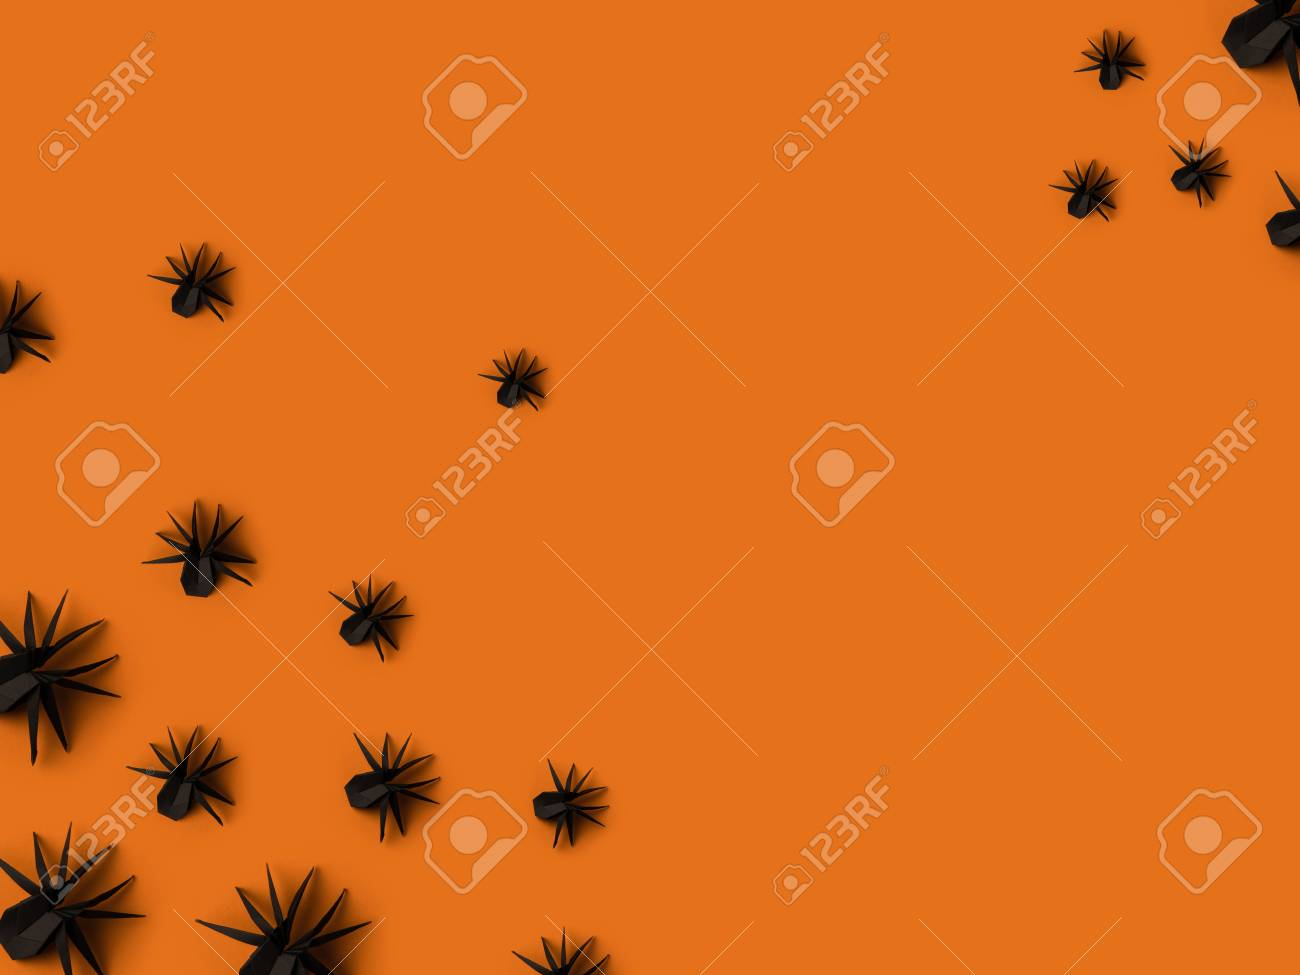 Black halloween origami spiders isolated on orange with copy black halloween origami spiders isolated on orange with copy space stock photo 88090754 jeuxipadfo Gallery